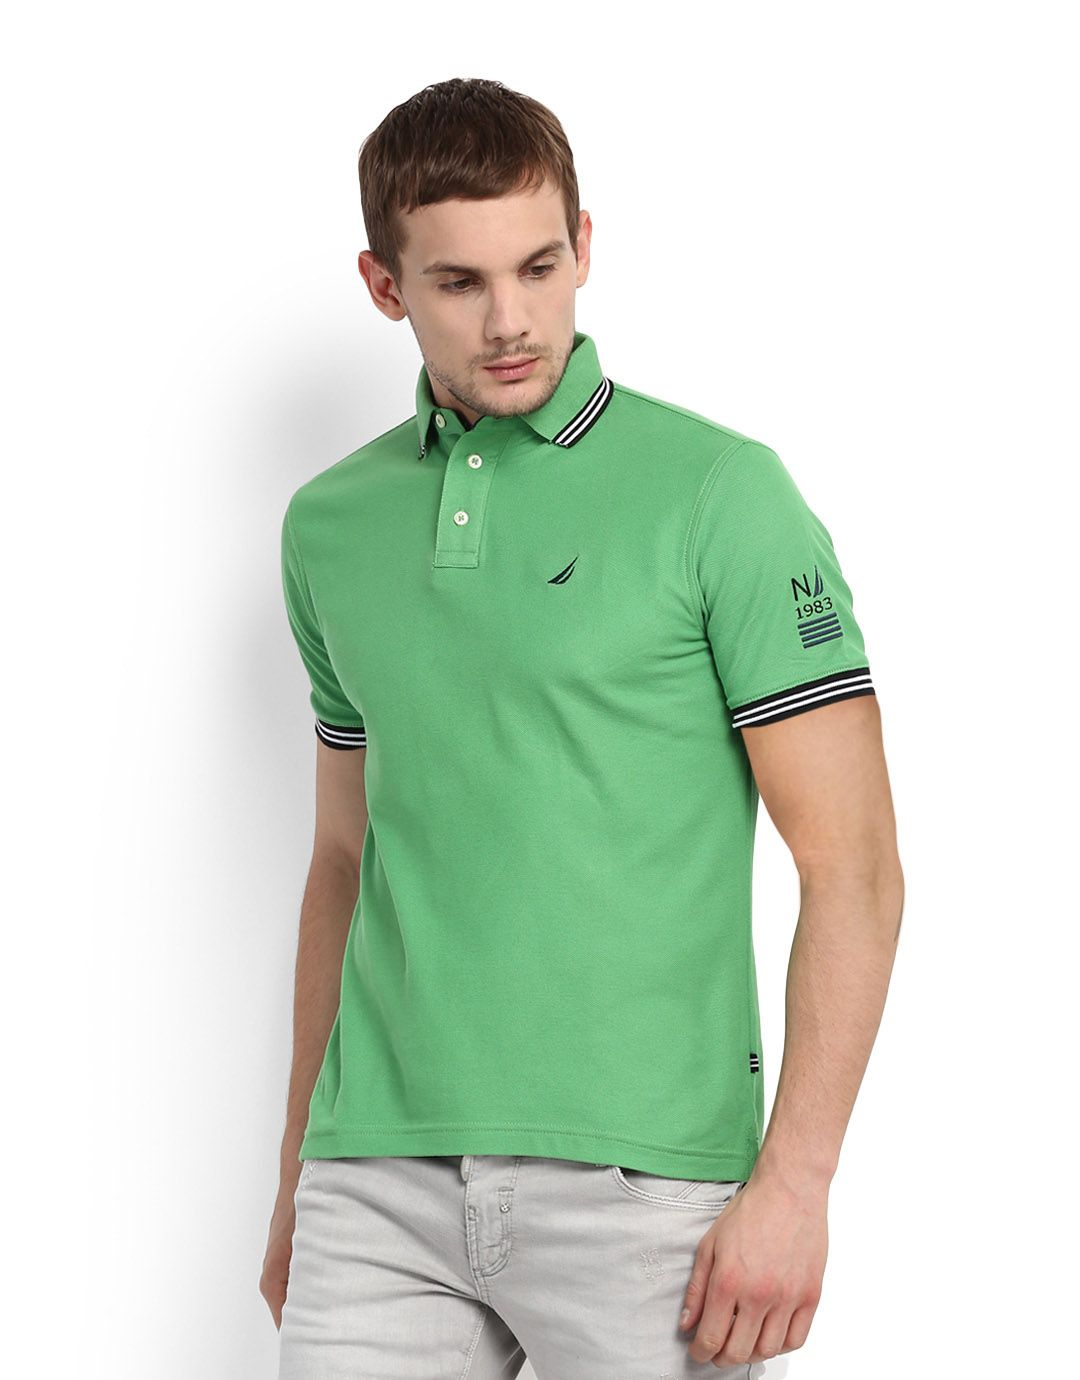 Nautica Green Polo T-Shirt